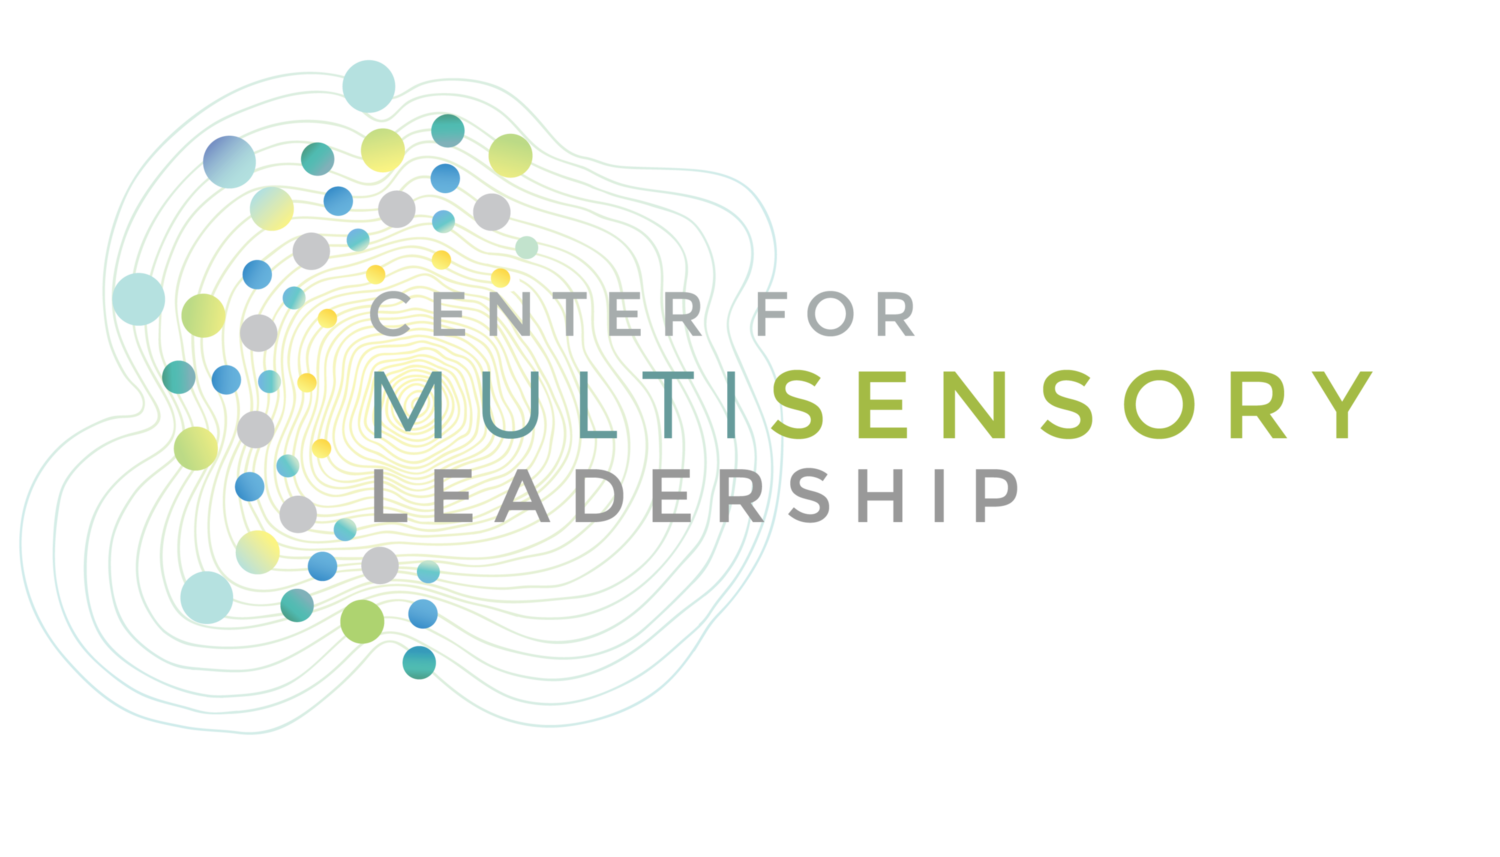 CENTER FOR MULTISENSORY LEADERSHIP